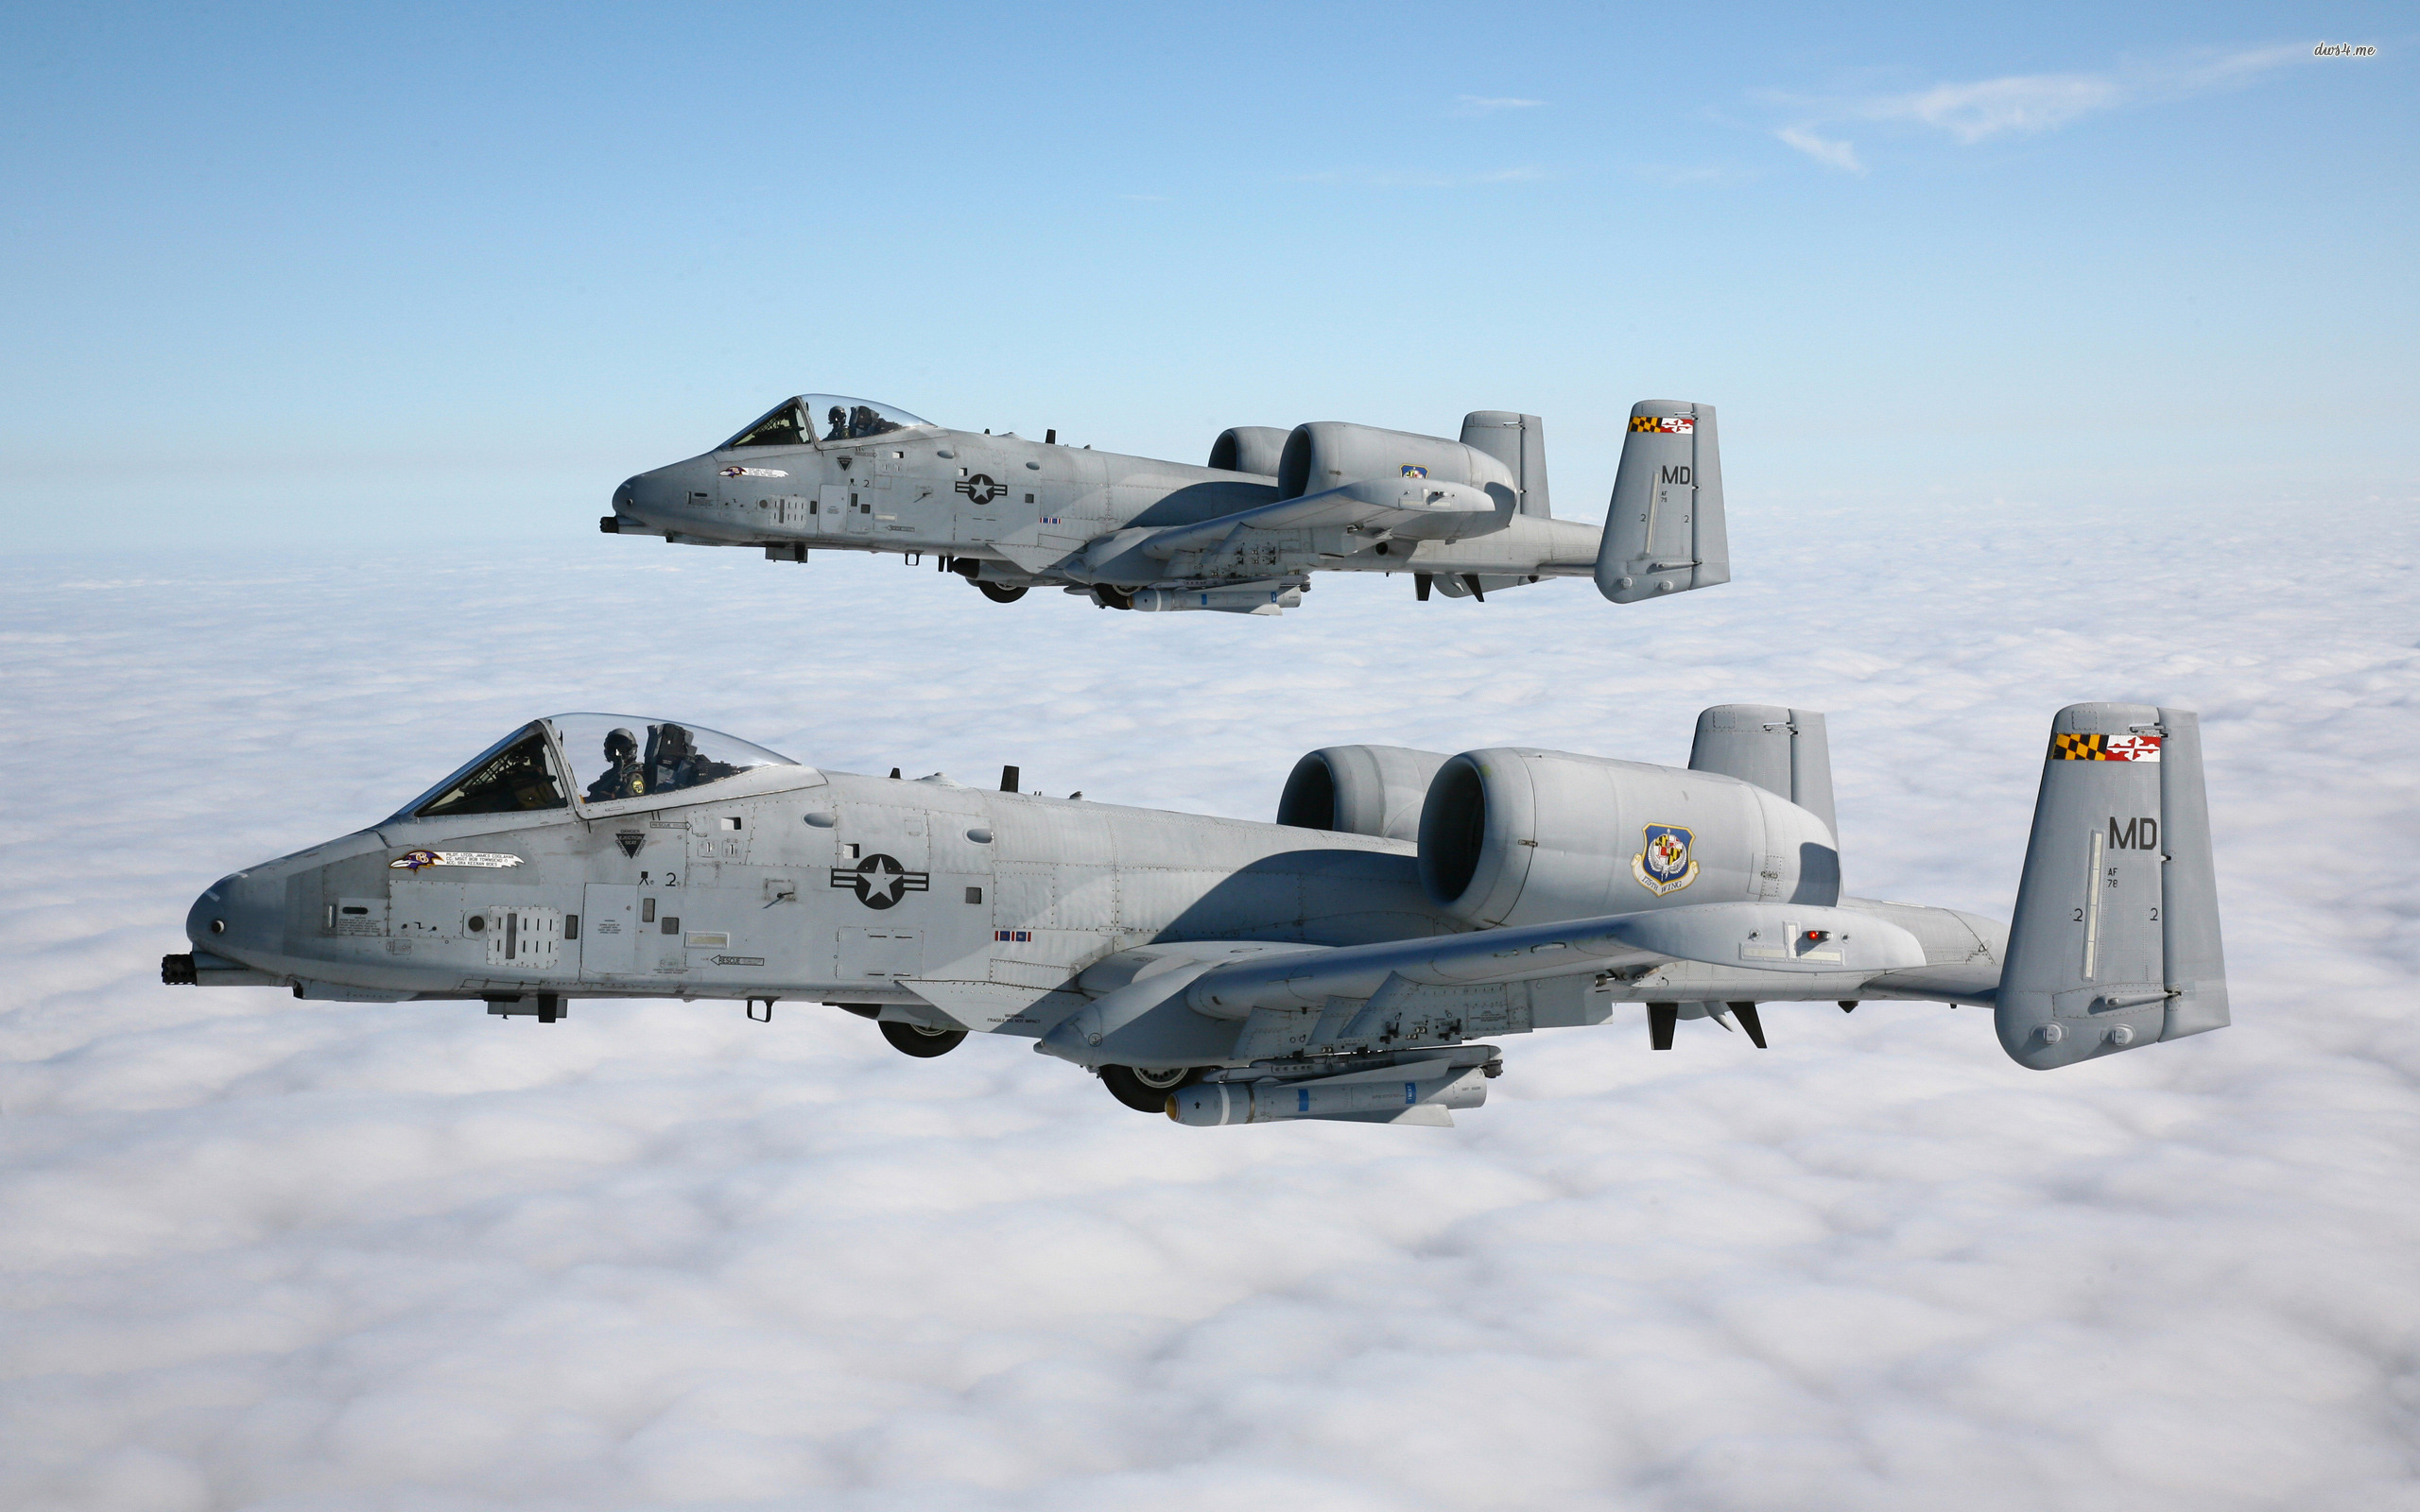 Fairchild Republic A 10 Thunderbolt II wallpaper 2560x1600